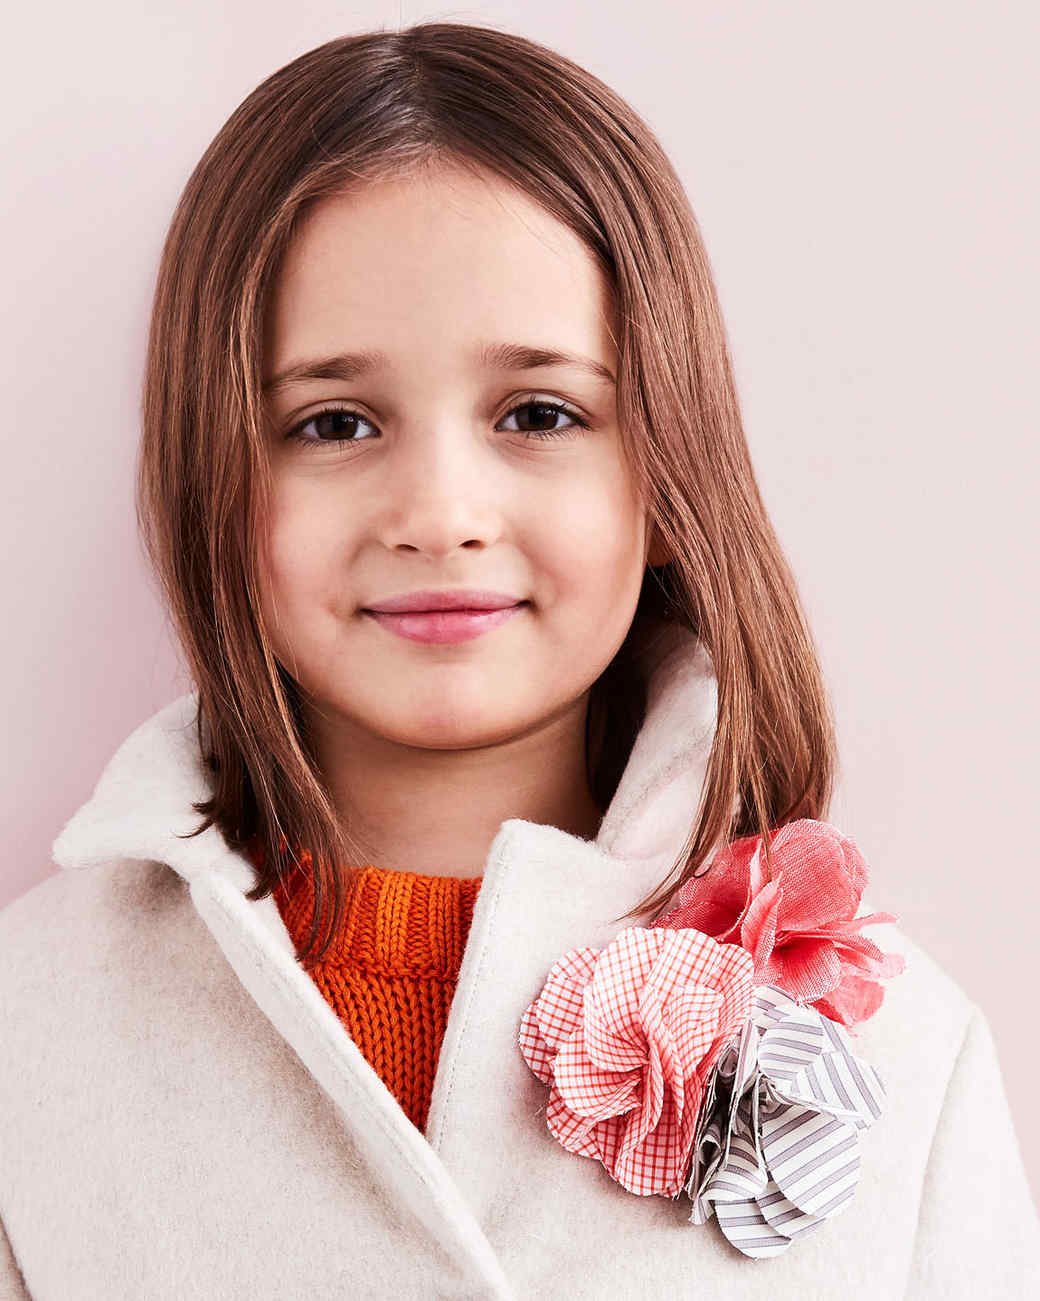 flower pin on little girl's coat